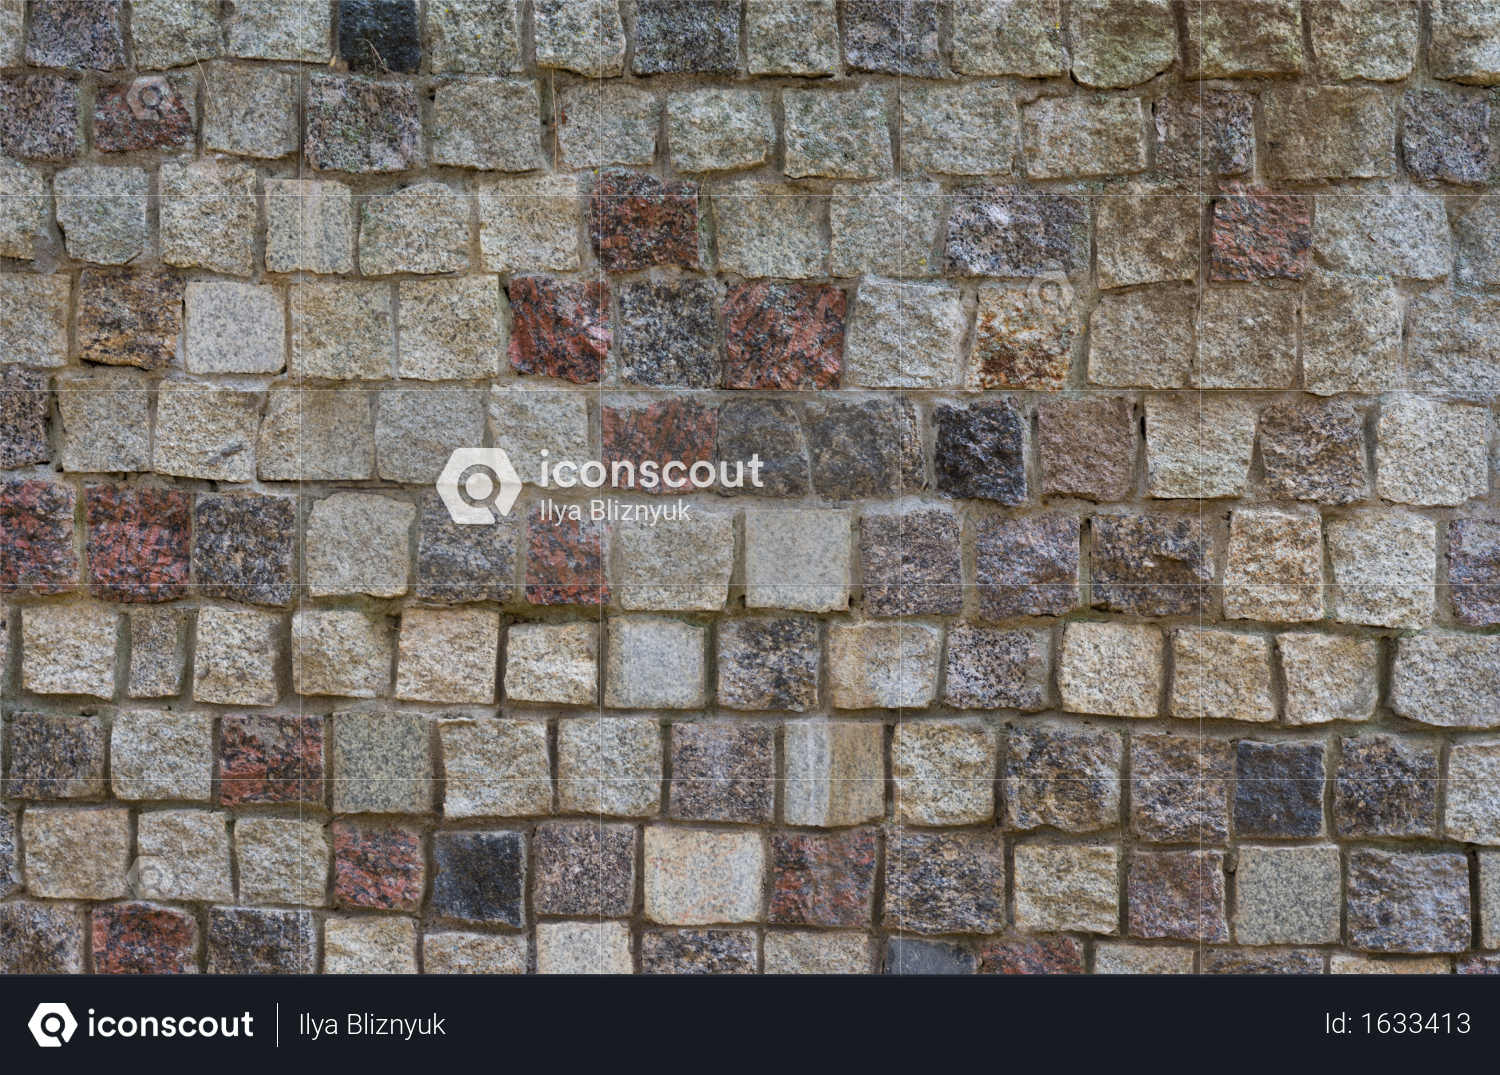 Premium Stone Wall Photo Download In Png Jpg Format Stone Wall Photo Wall Wall